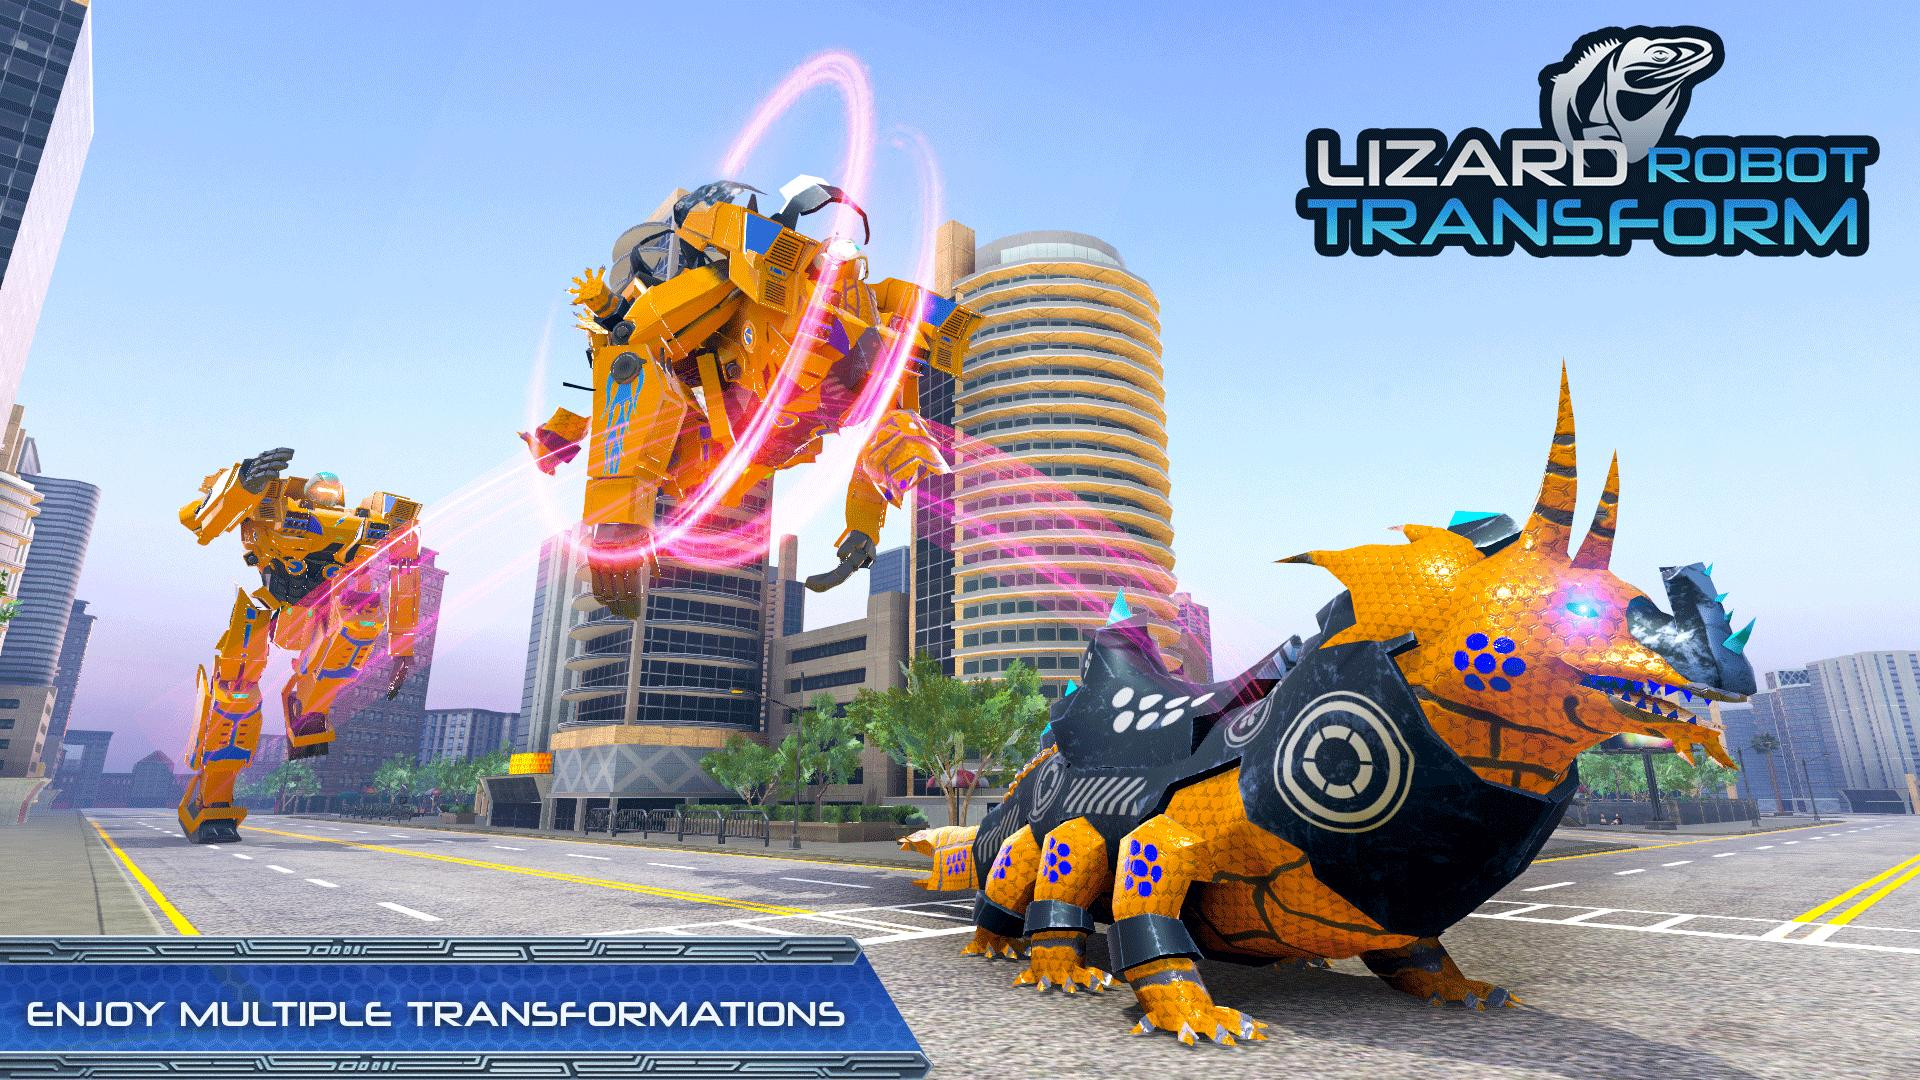 Lizard Robot Car Game Dragon Robot Transform For Android Apk Download